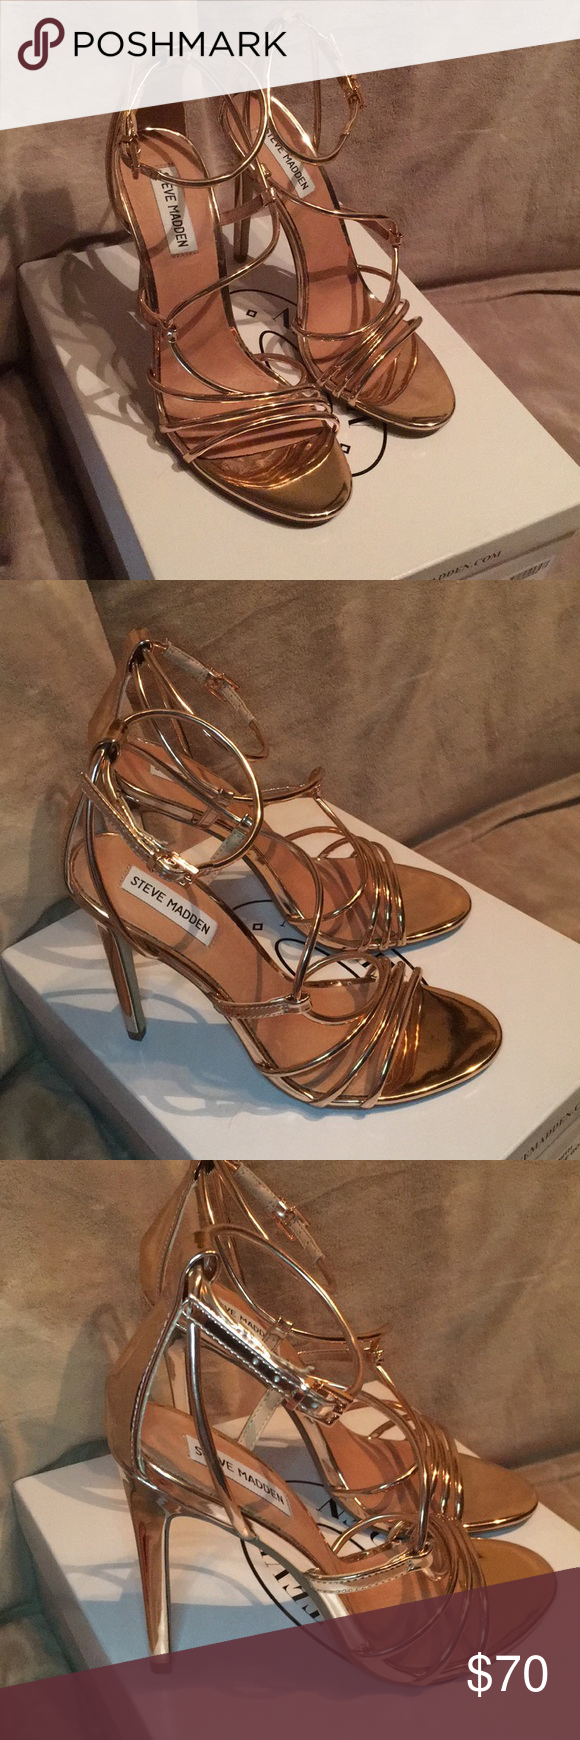 f057101693bb Steve Madden Smith Strappy Sandal Rose Gold Sz 9 the SMITH sandal features  a swirling center